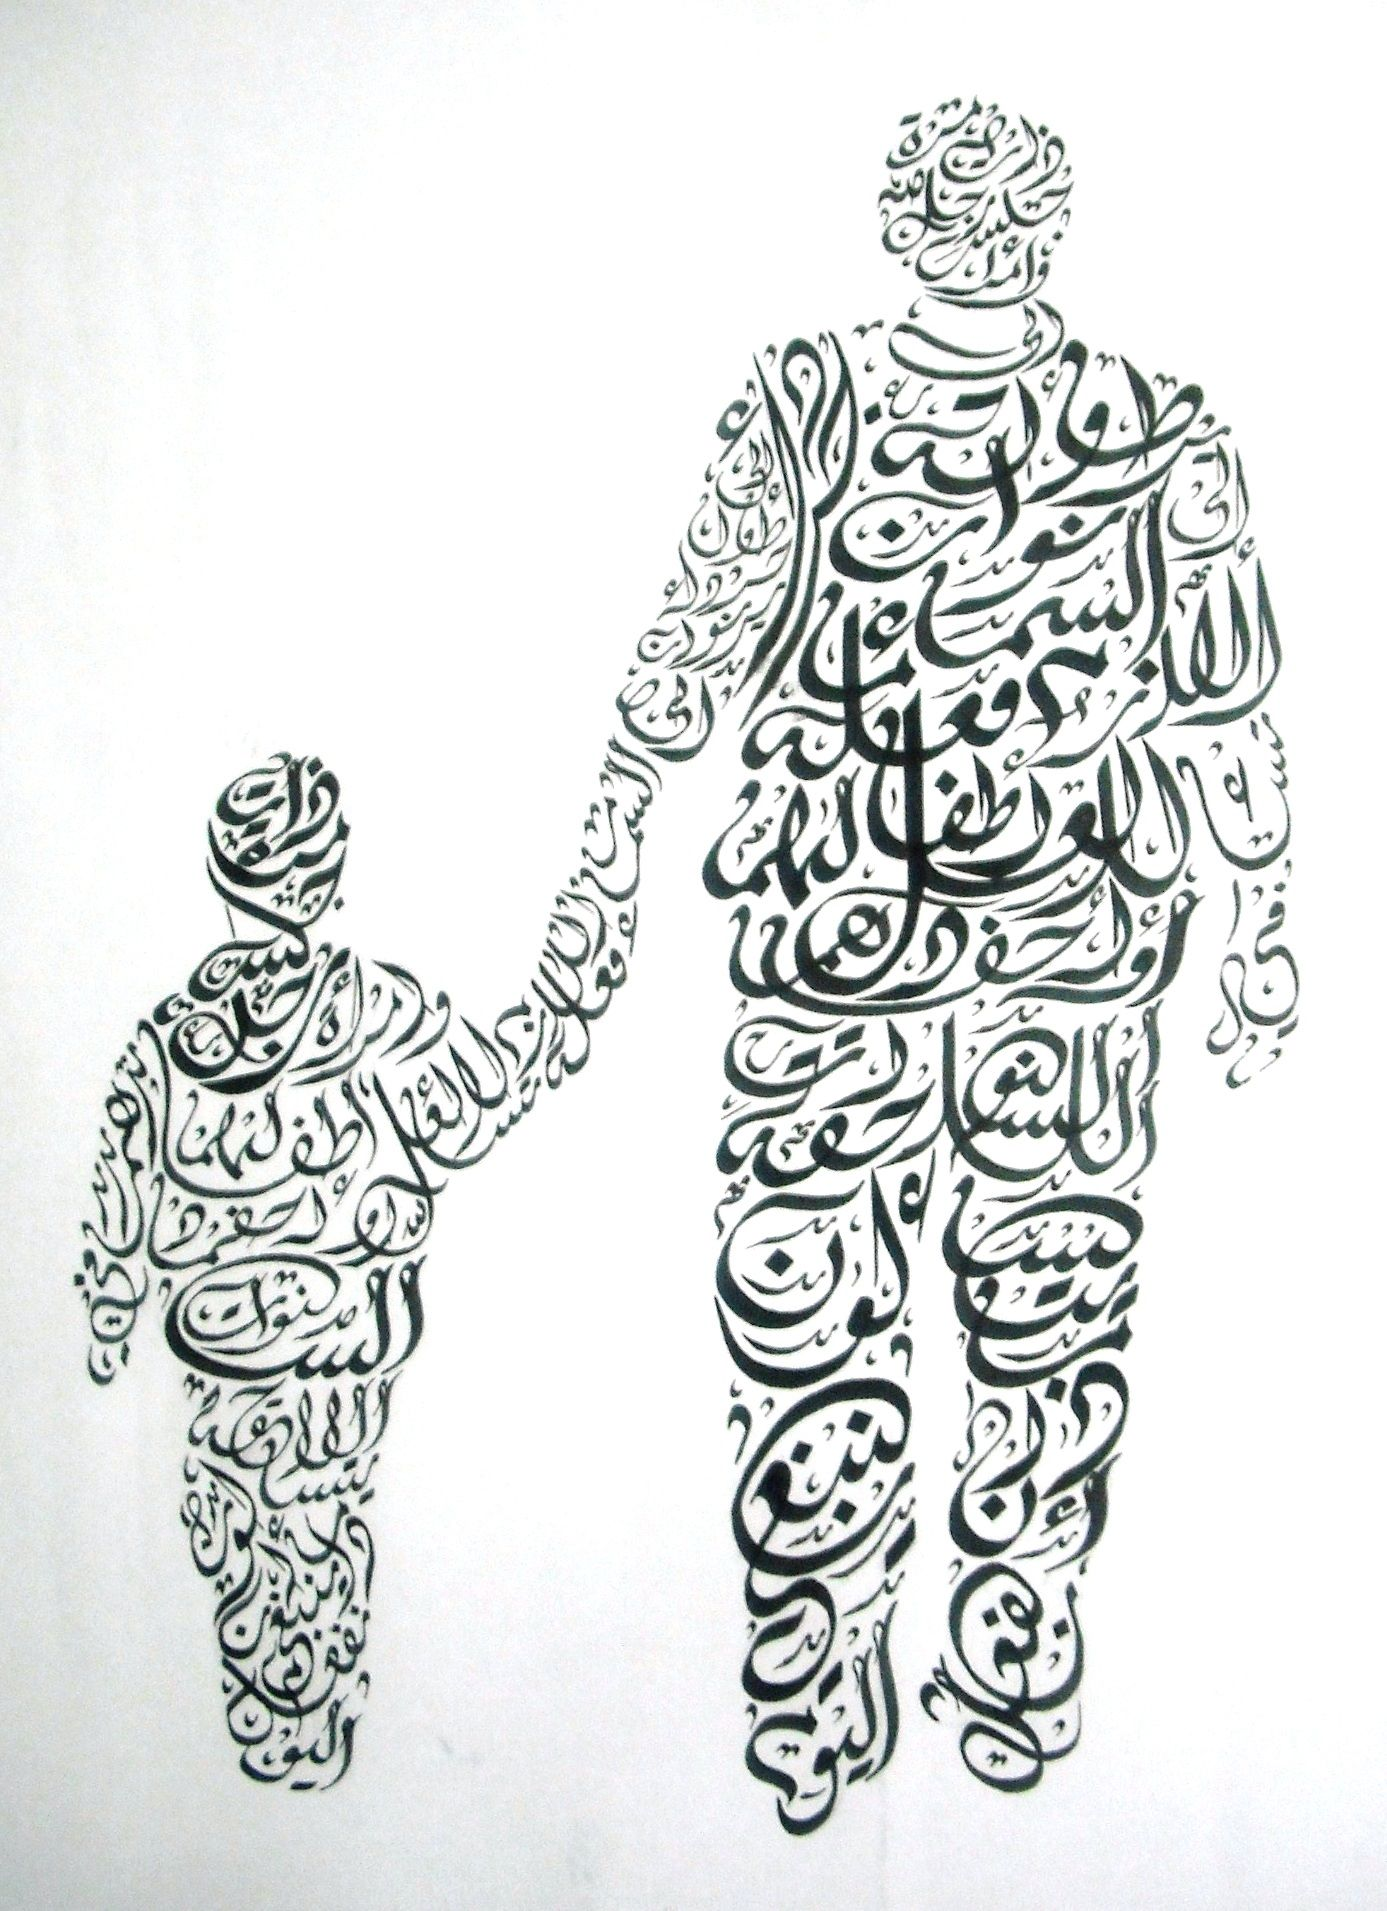 This Is An Arabic Calligraphy Writing Form Called Diwani Jali